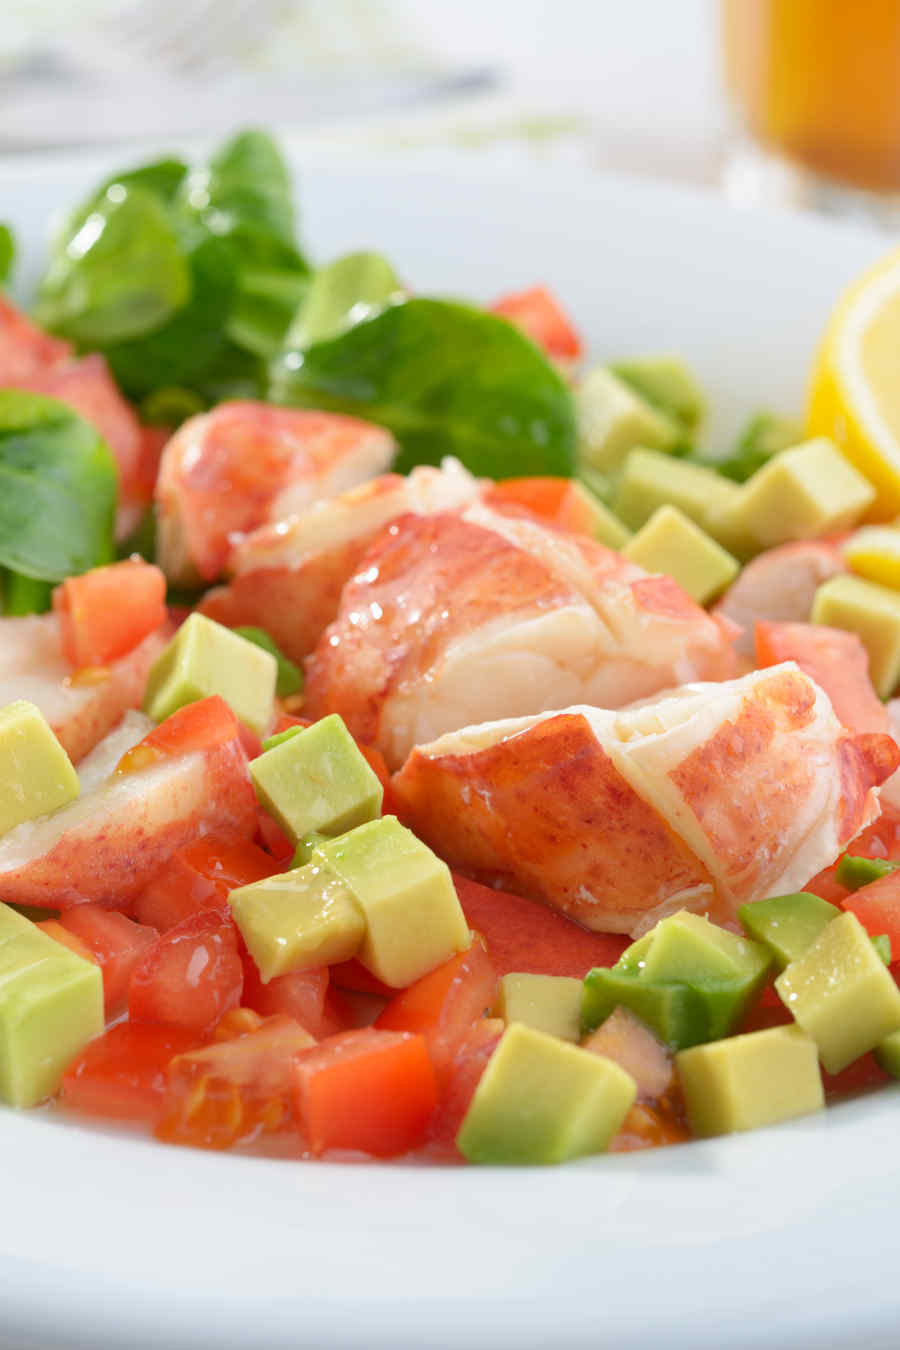 Lobster salad with avocado, tomato, lettuce and lemon